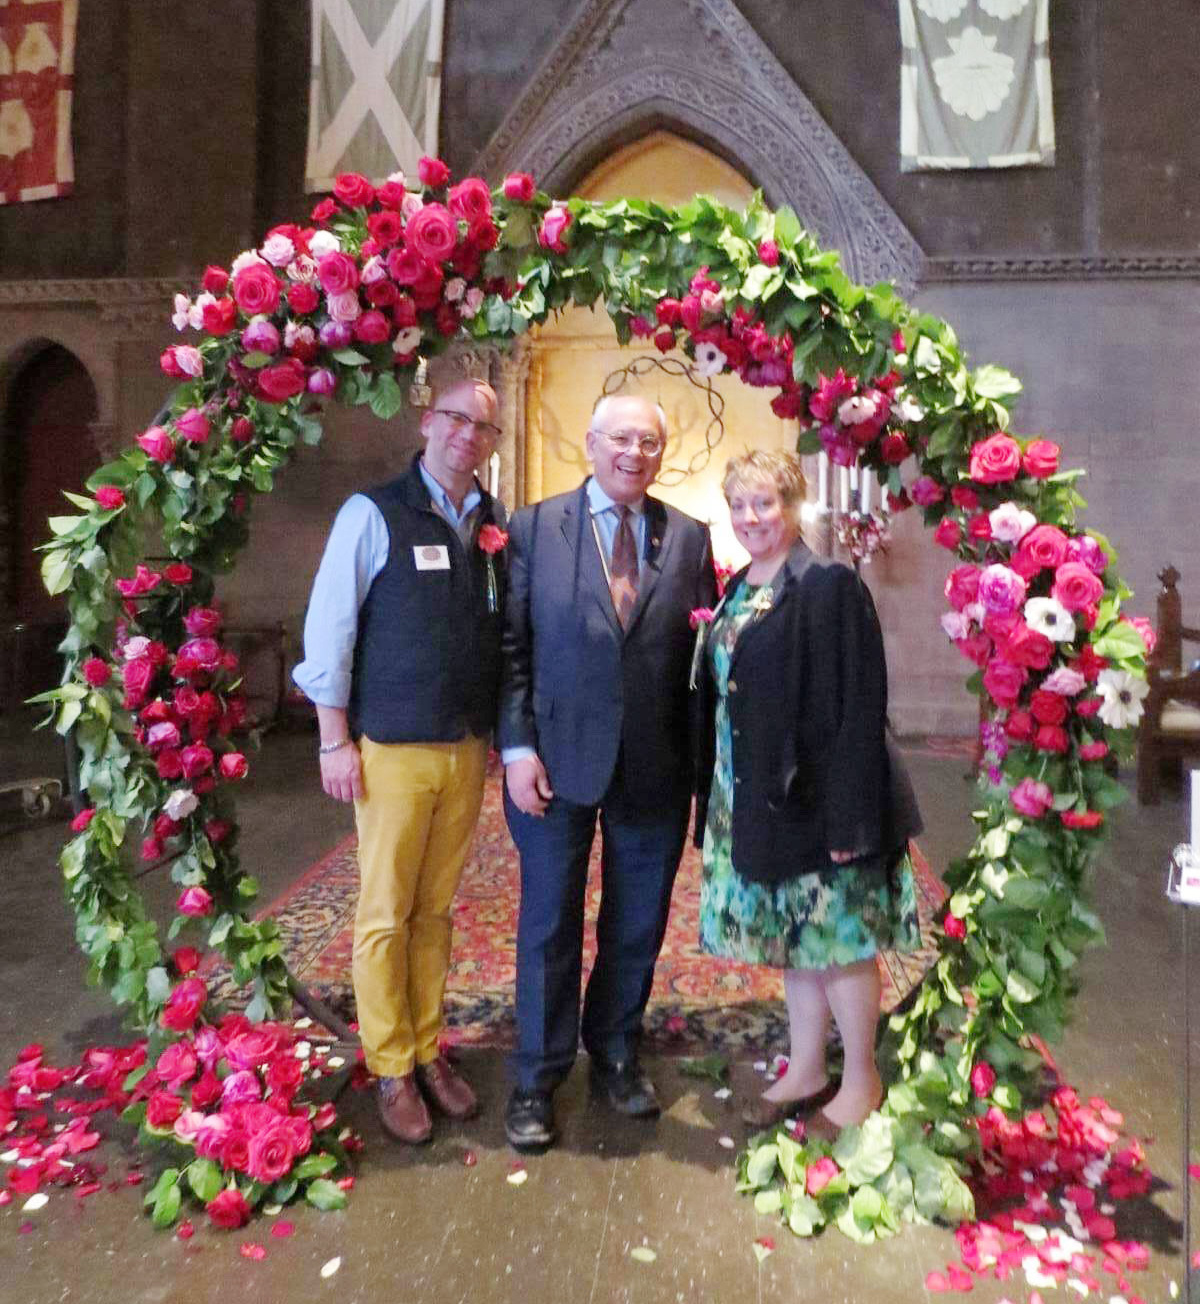 From left: Louis Bower Bannister,The Enchanted Florist &Cathedral in Bloom Co-chair, Congressman Paul Tonko, Michele Peters, Ambiance Florals and Events & Cathedral in Bloom Co-chair.